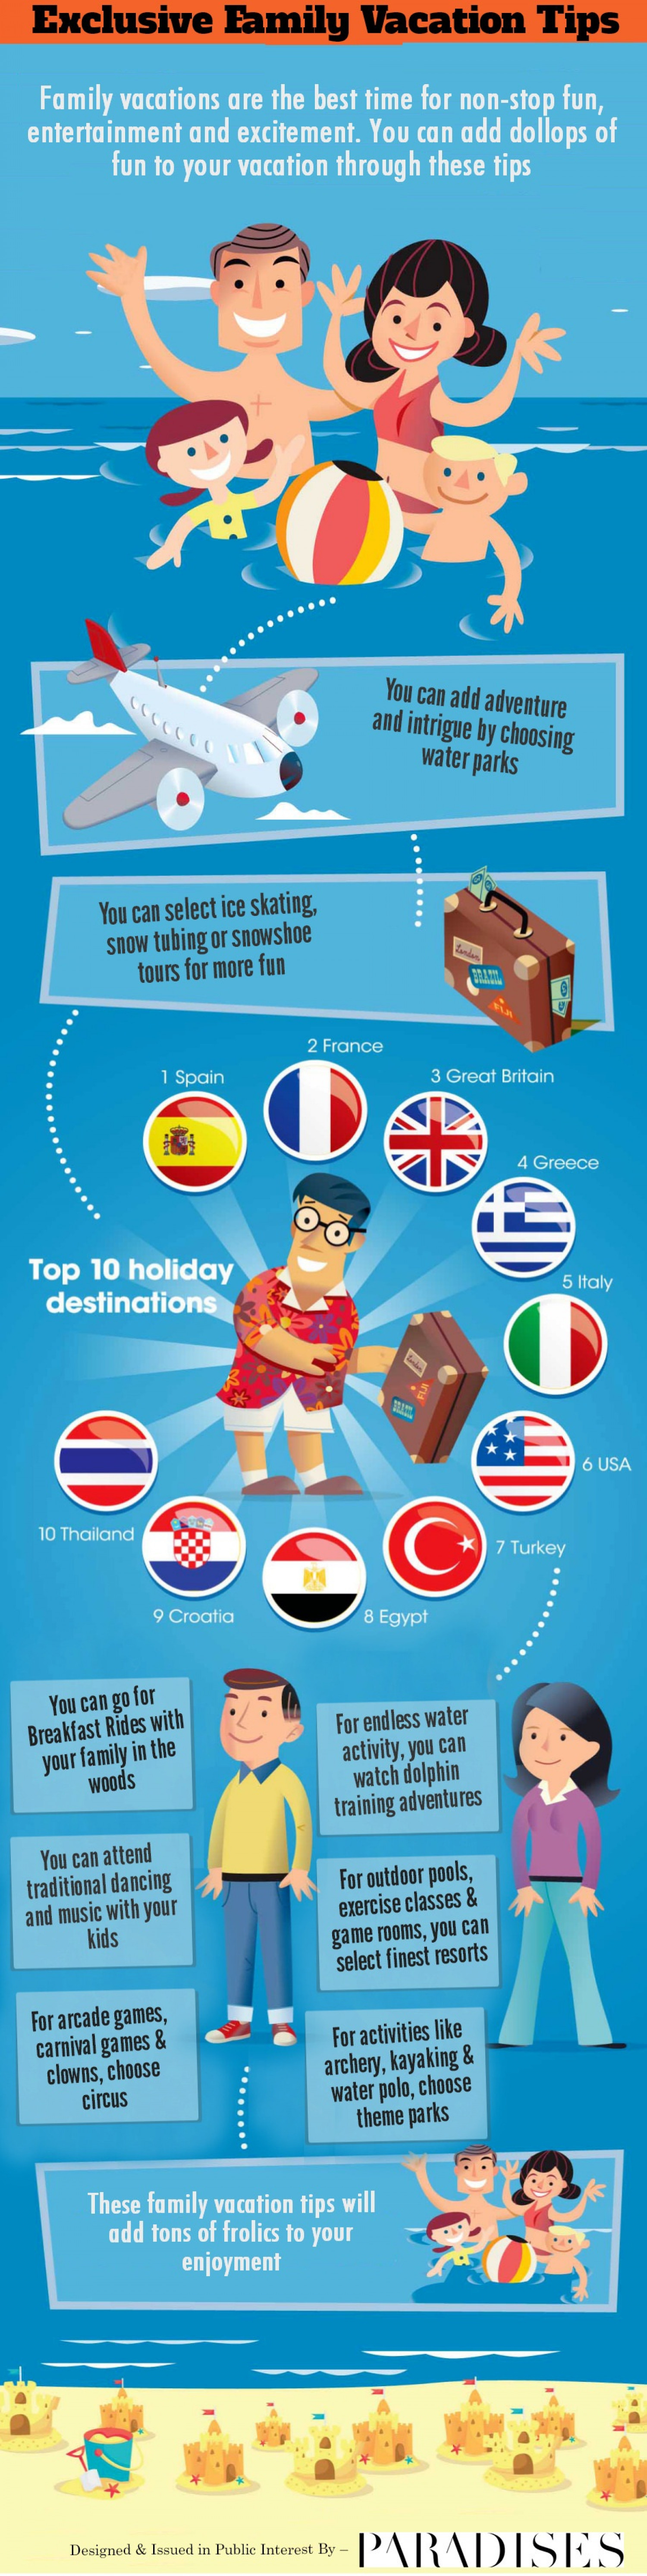 Exclusive Family Vacation Tips Infographic